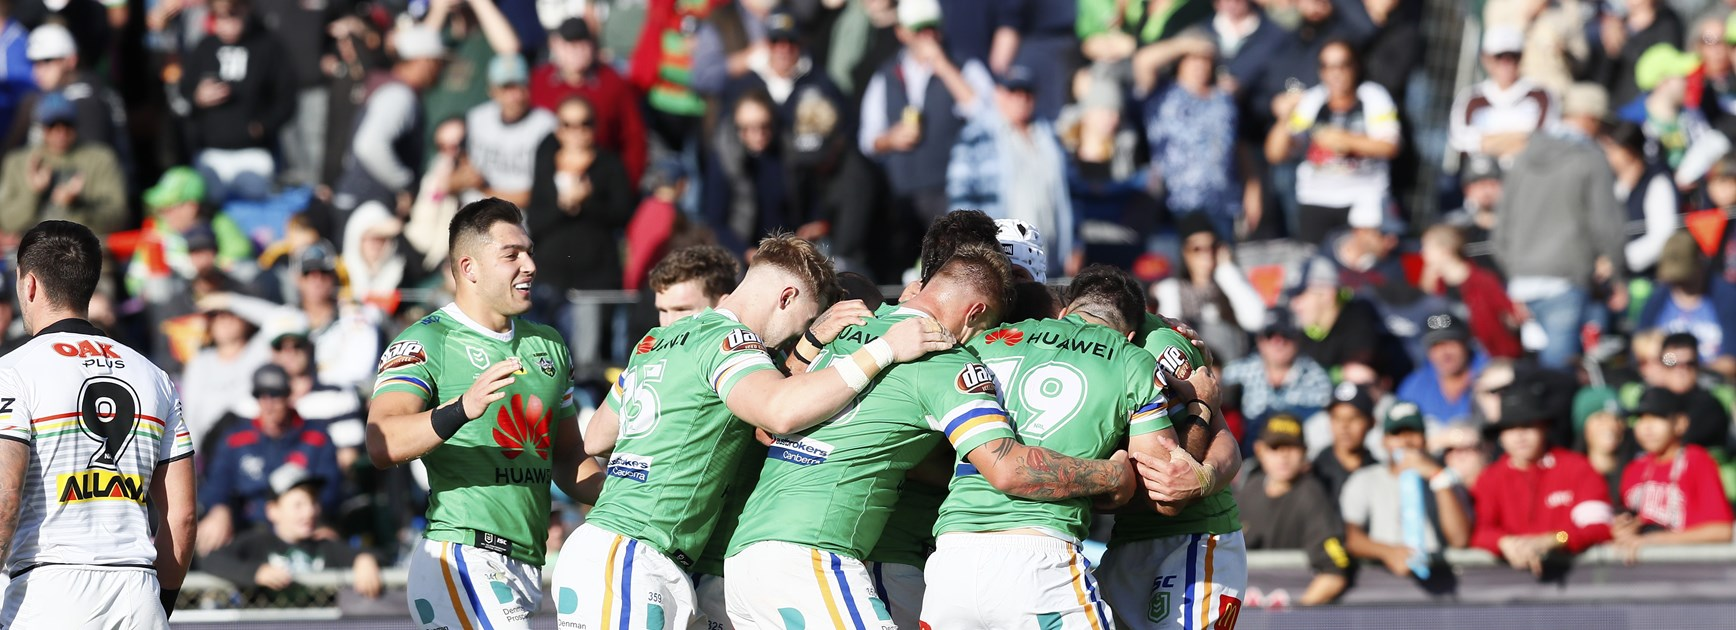 NRL Match Report: Raiders thrash Panthers